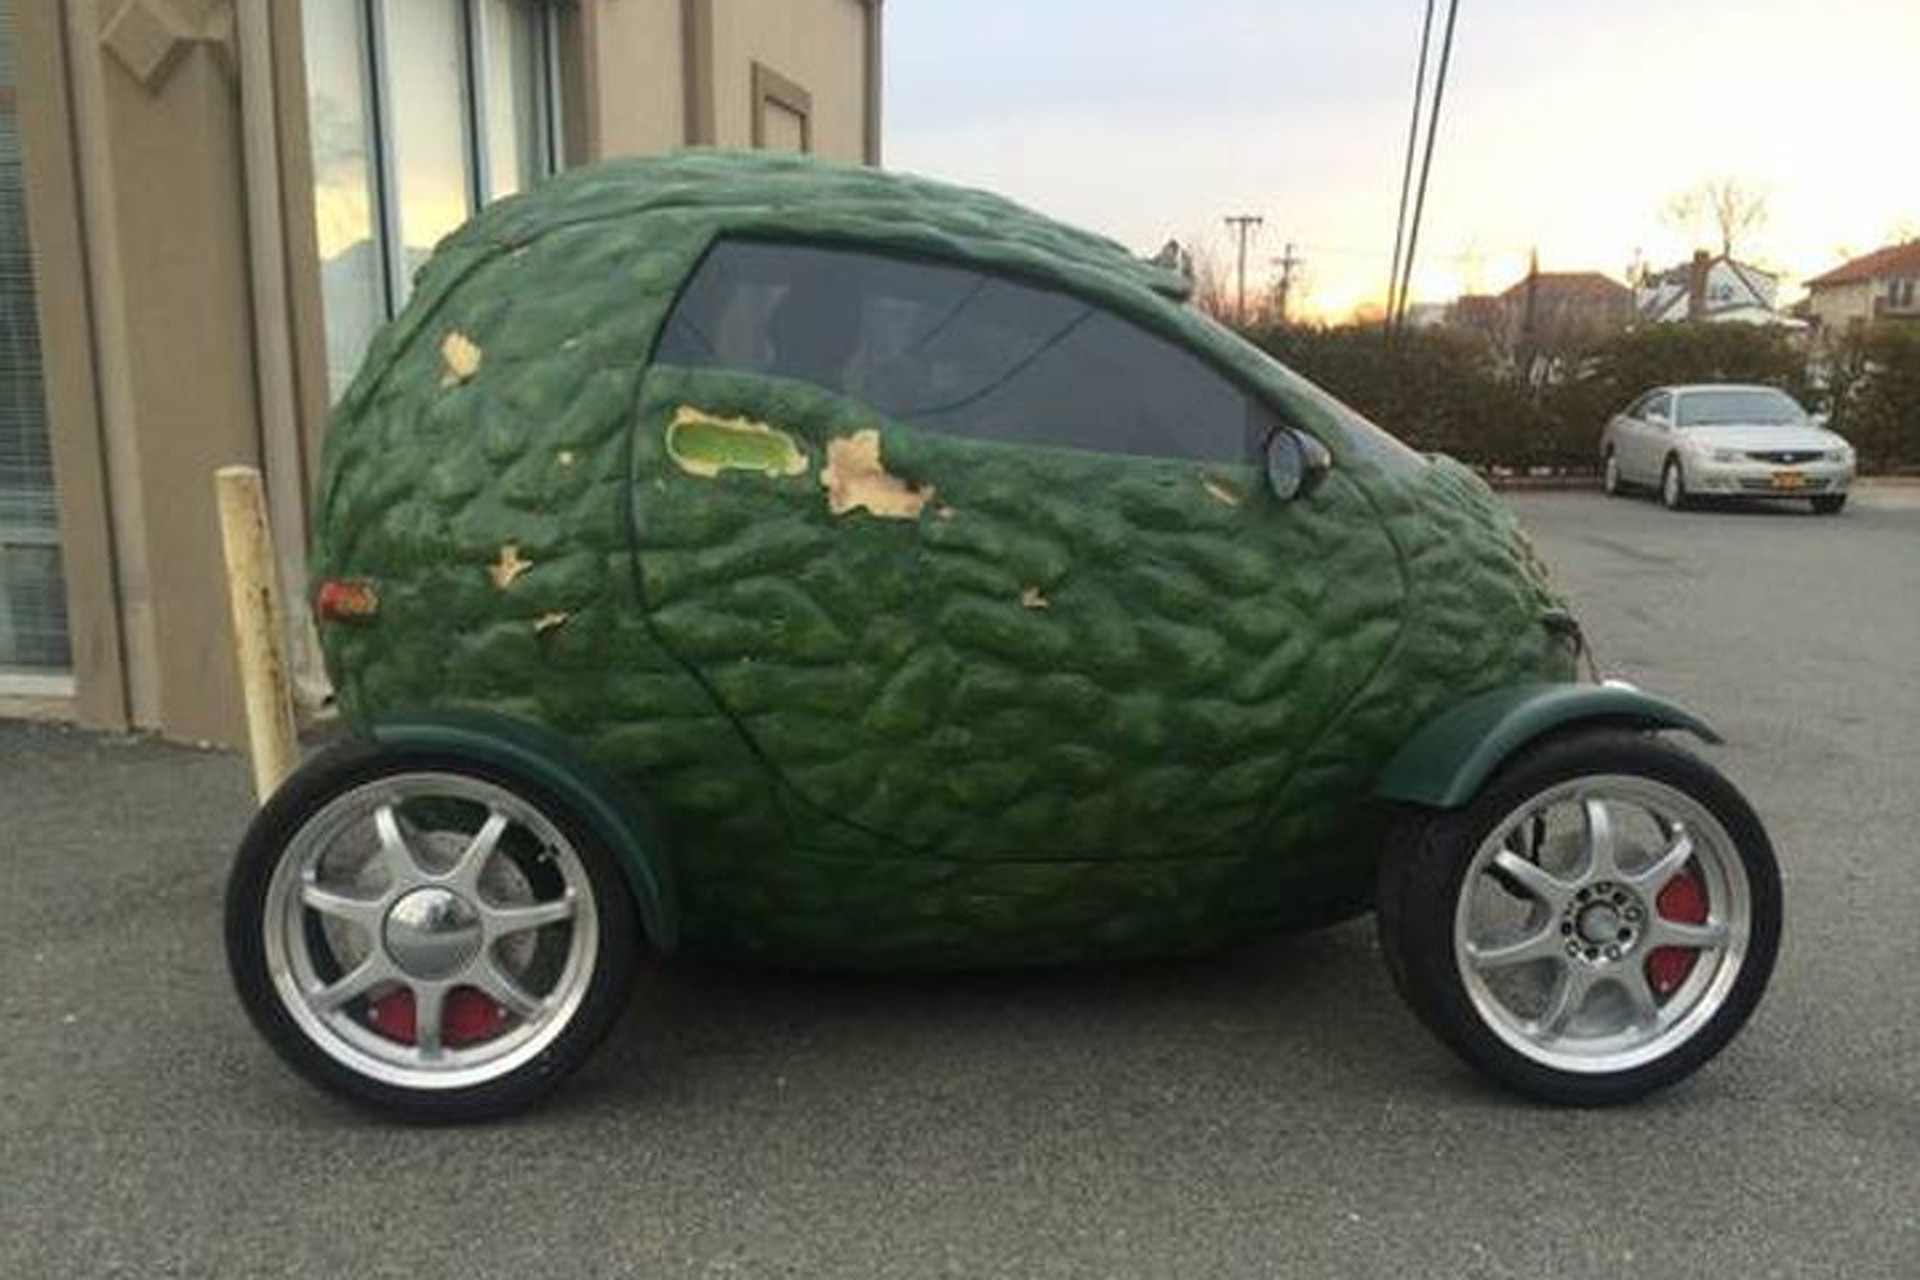 found on craigslist this amazing avocado car